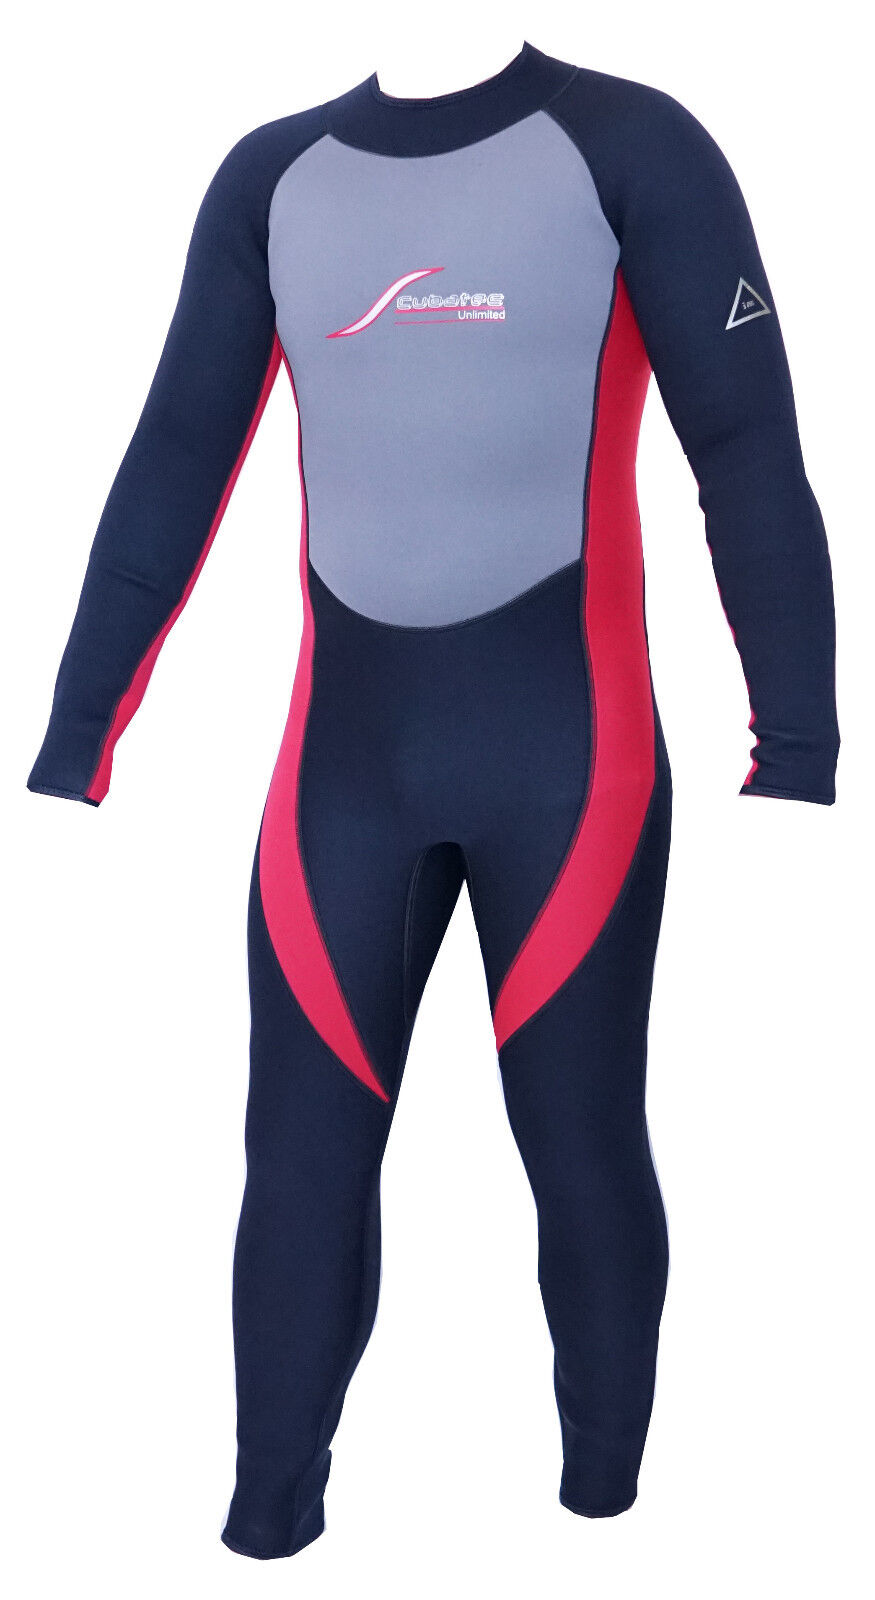 Scubatec Wet Suit 3mm Men's Surfing Sailing Wakeboard Diving Suit red-greyx